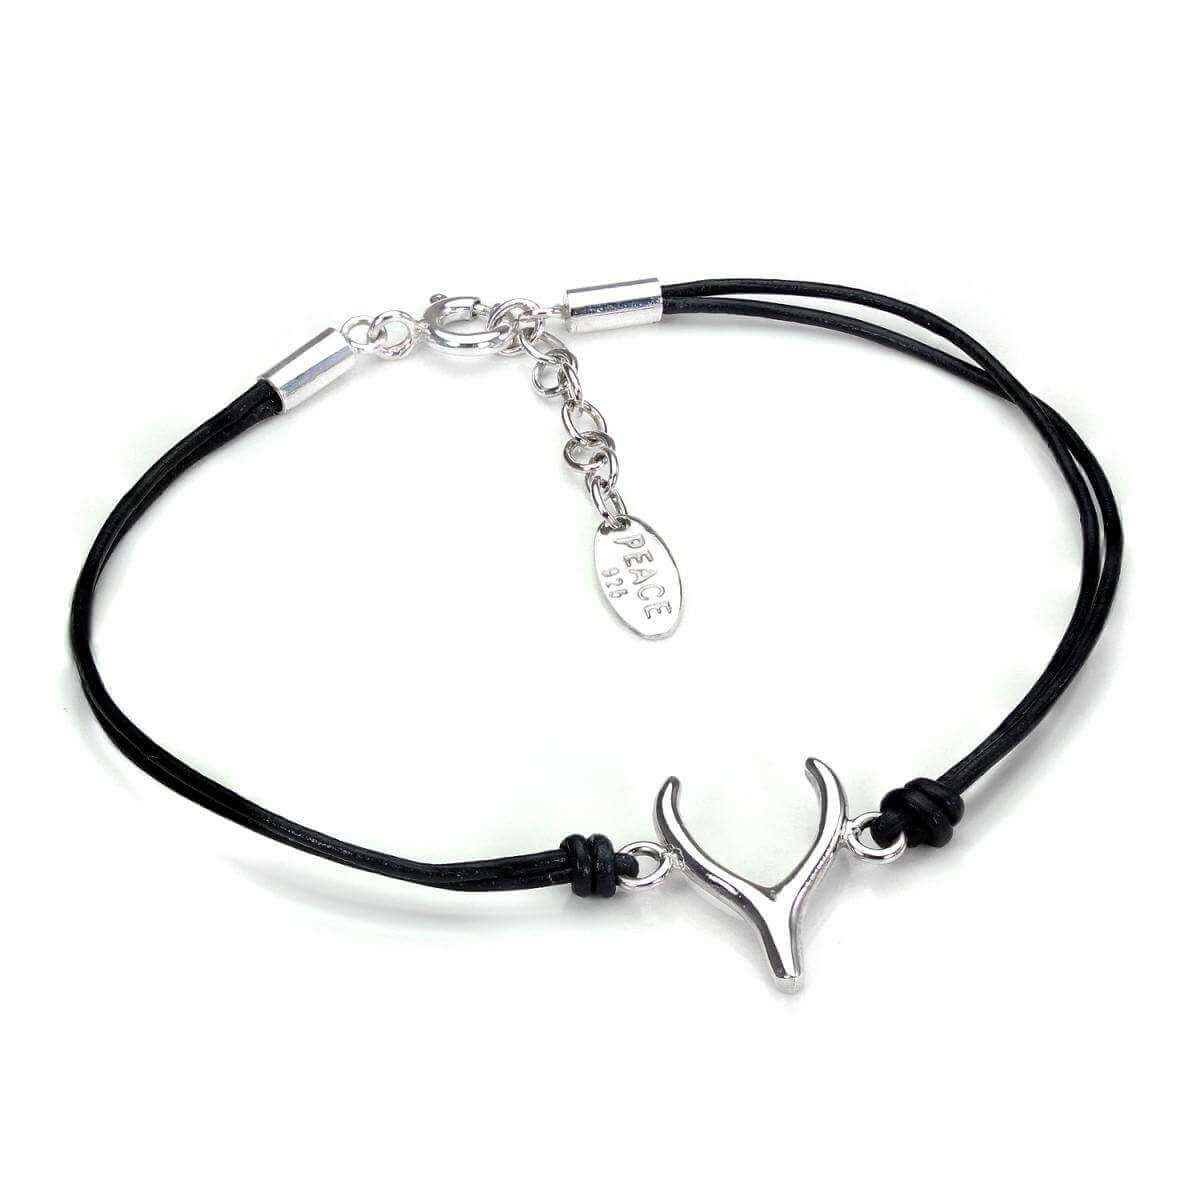 Adjustable Black Cord Bracelet with Sterling Silver Wishbone Charm